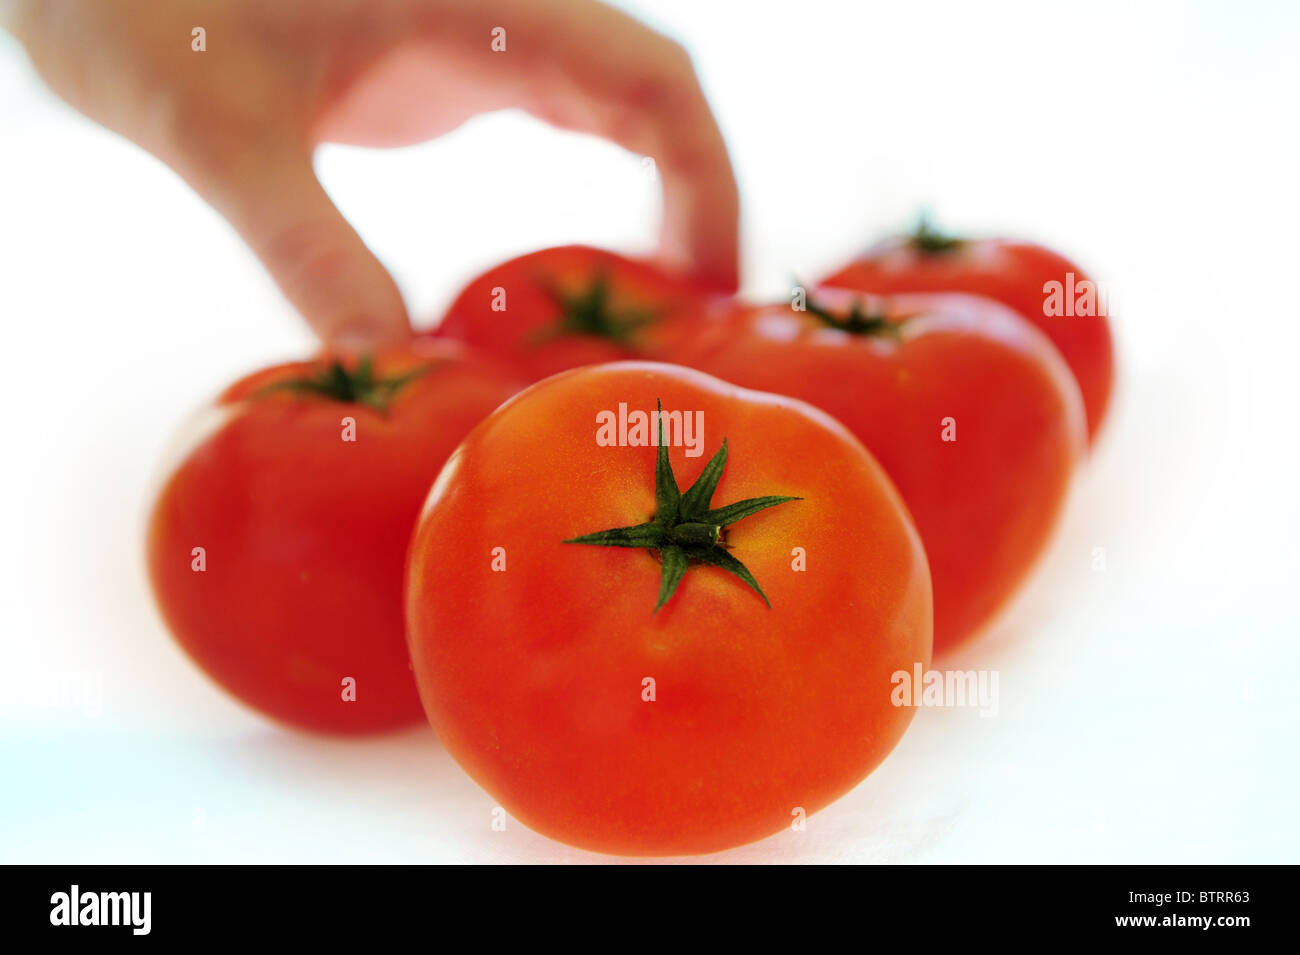 Photo Illustration - Healthy Diet Red Tomatoes - Stock Image